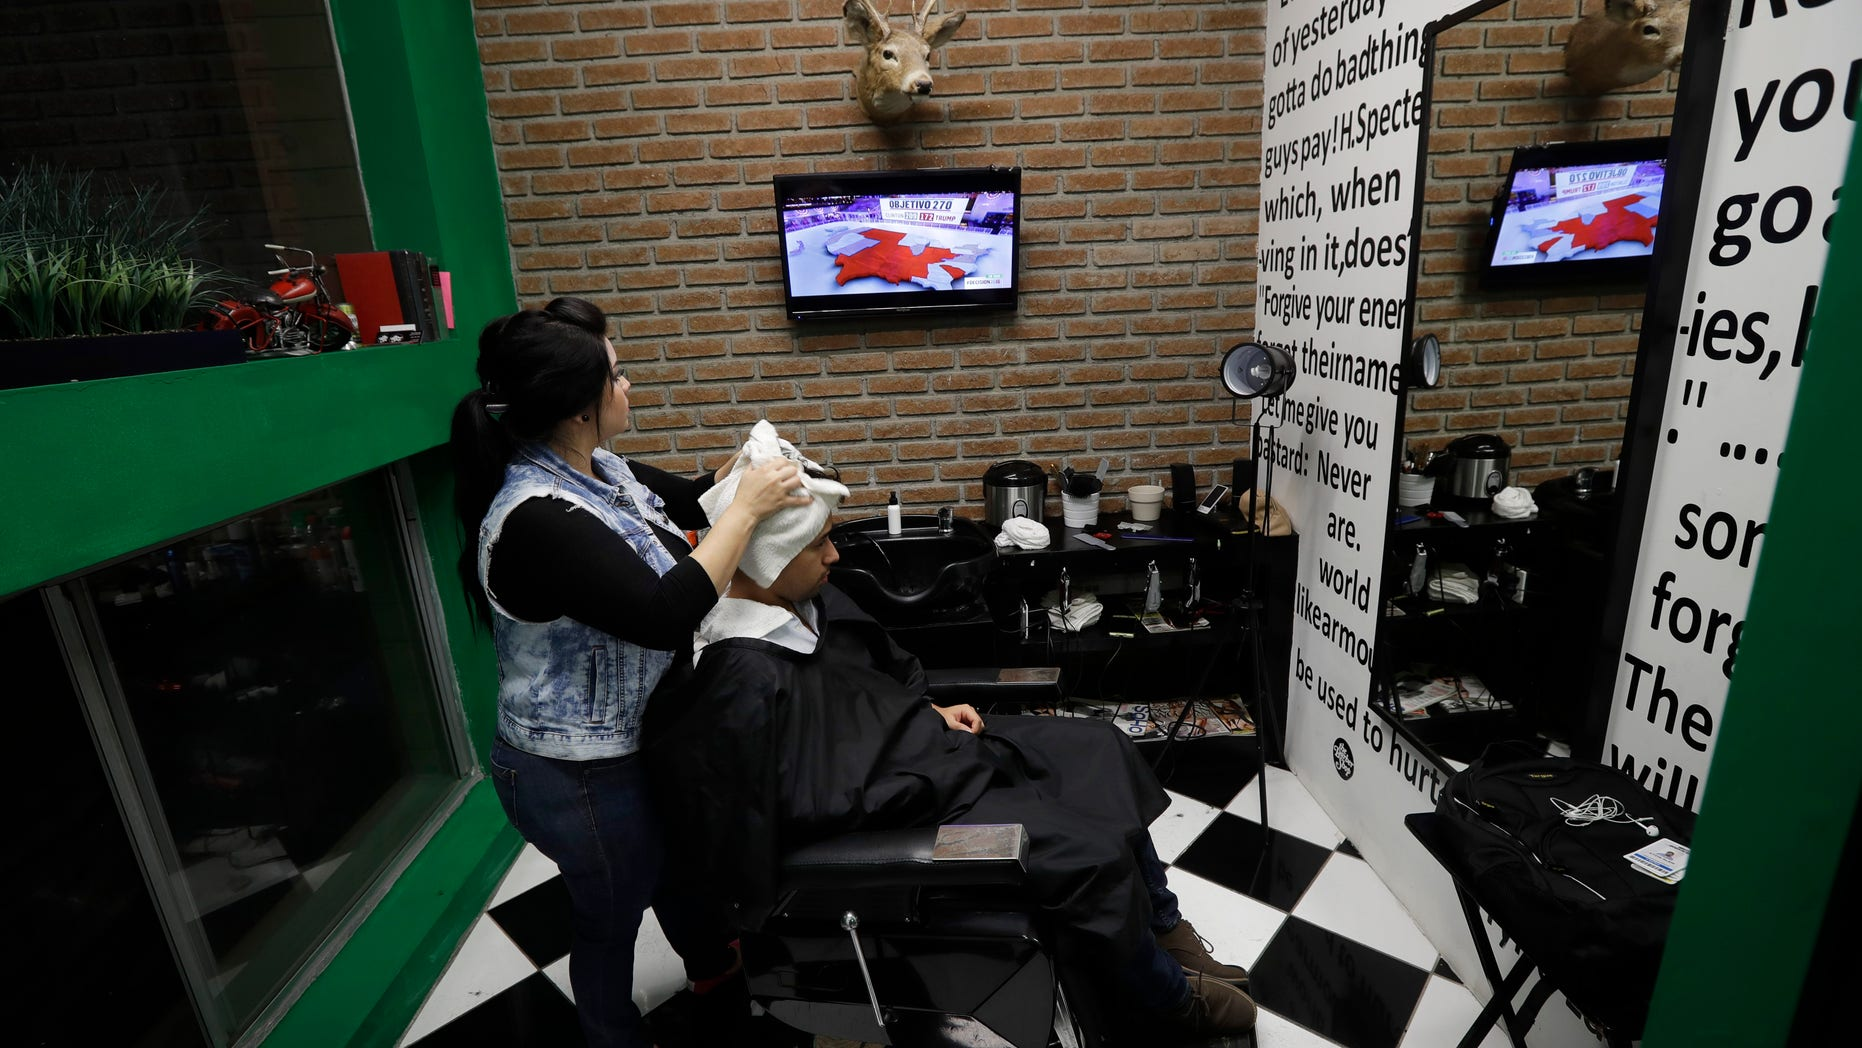 Paula Noriega, left, looks up at a screen displaying news of the elections in the United States as she dries the hair of Alan Maldonado at a barber shop Tuesday, Nov. 8, 2016, in Tijuana, Mexico. (AP Photo/Gregory Bull)